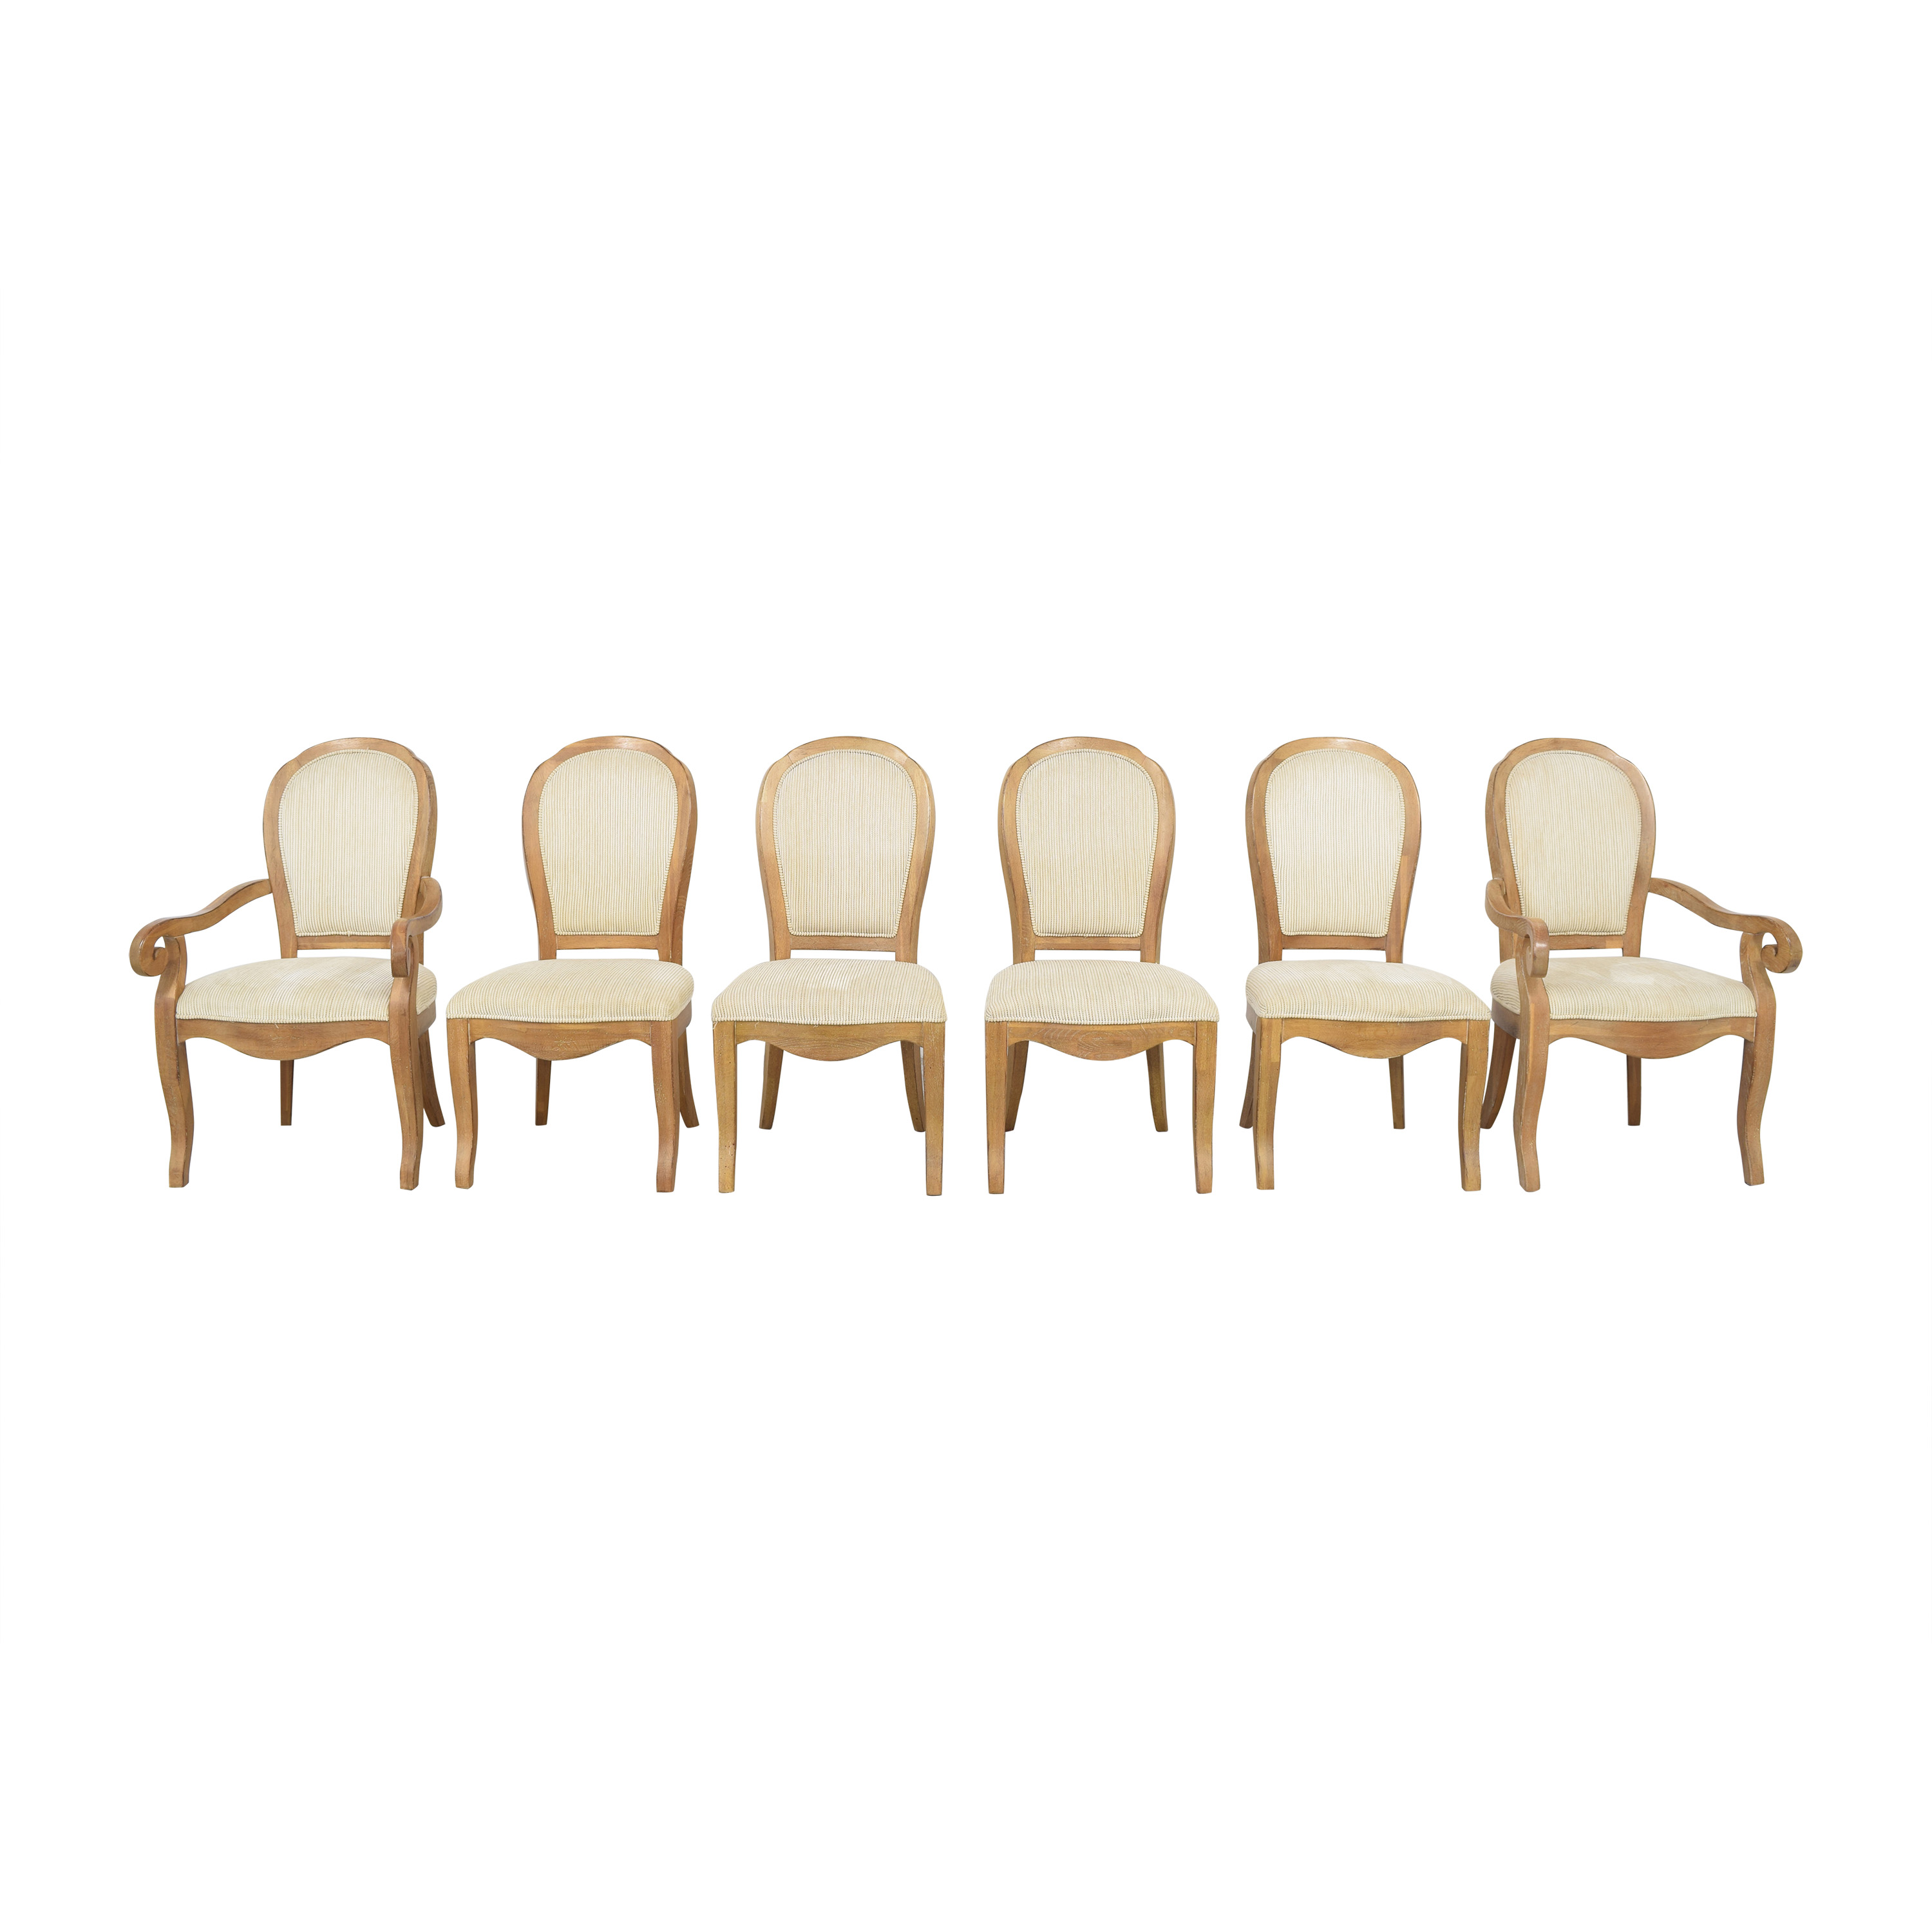 Drexel Heritage Drexel Heritage Dining Chairs price